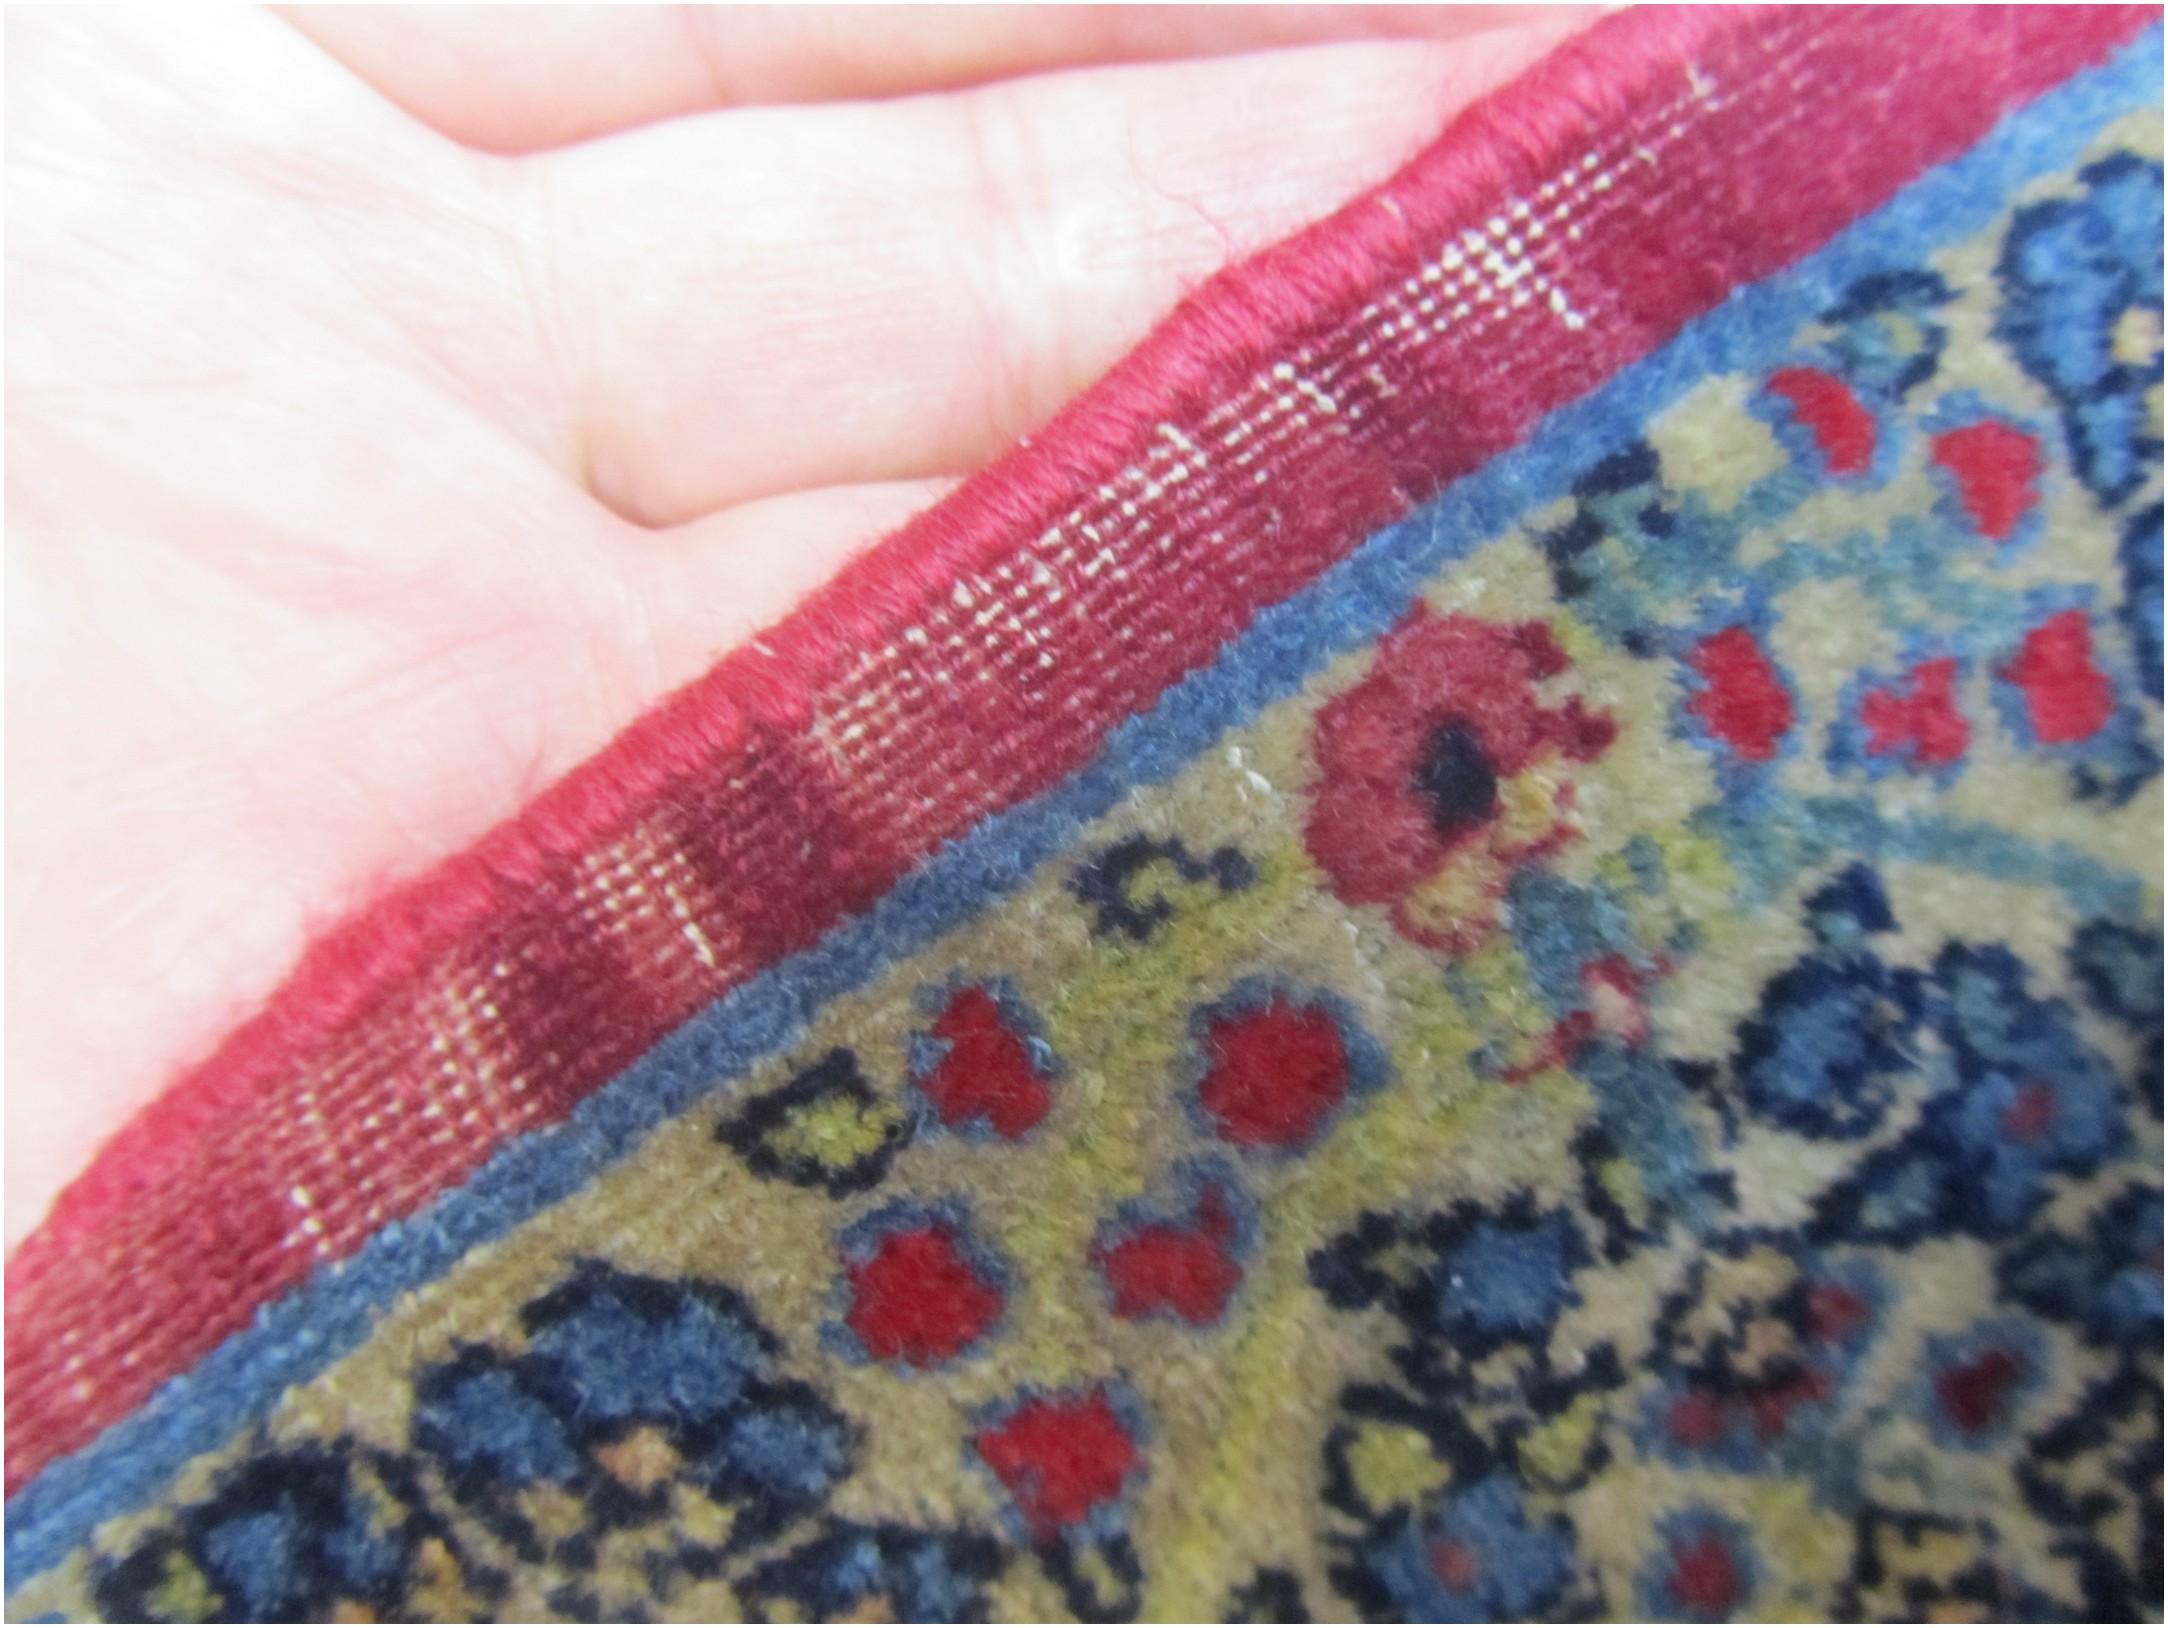 The edge in red shown here made by unmatched wool. You can see the shiny new wool